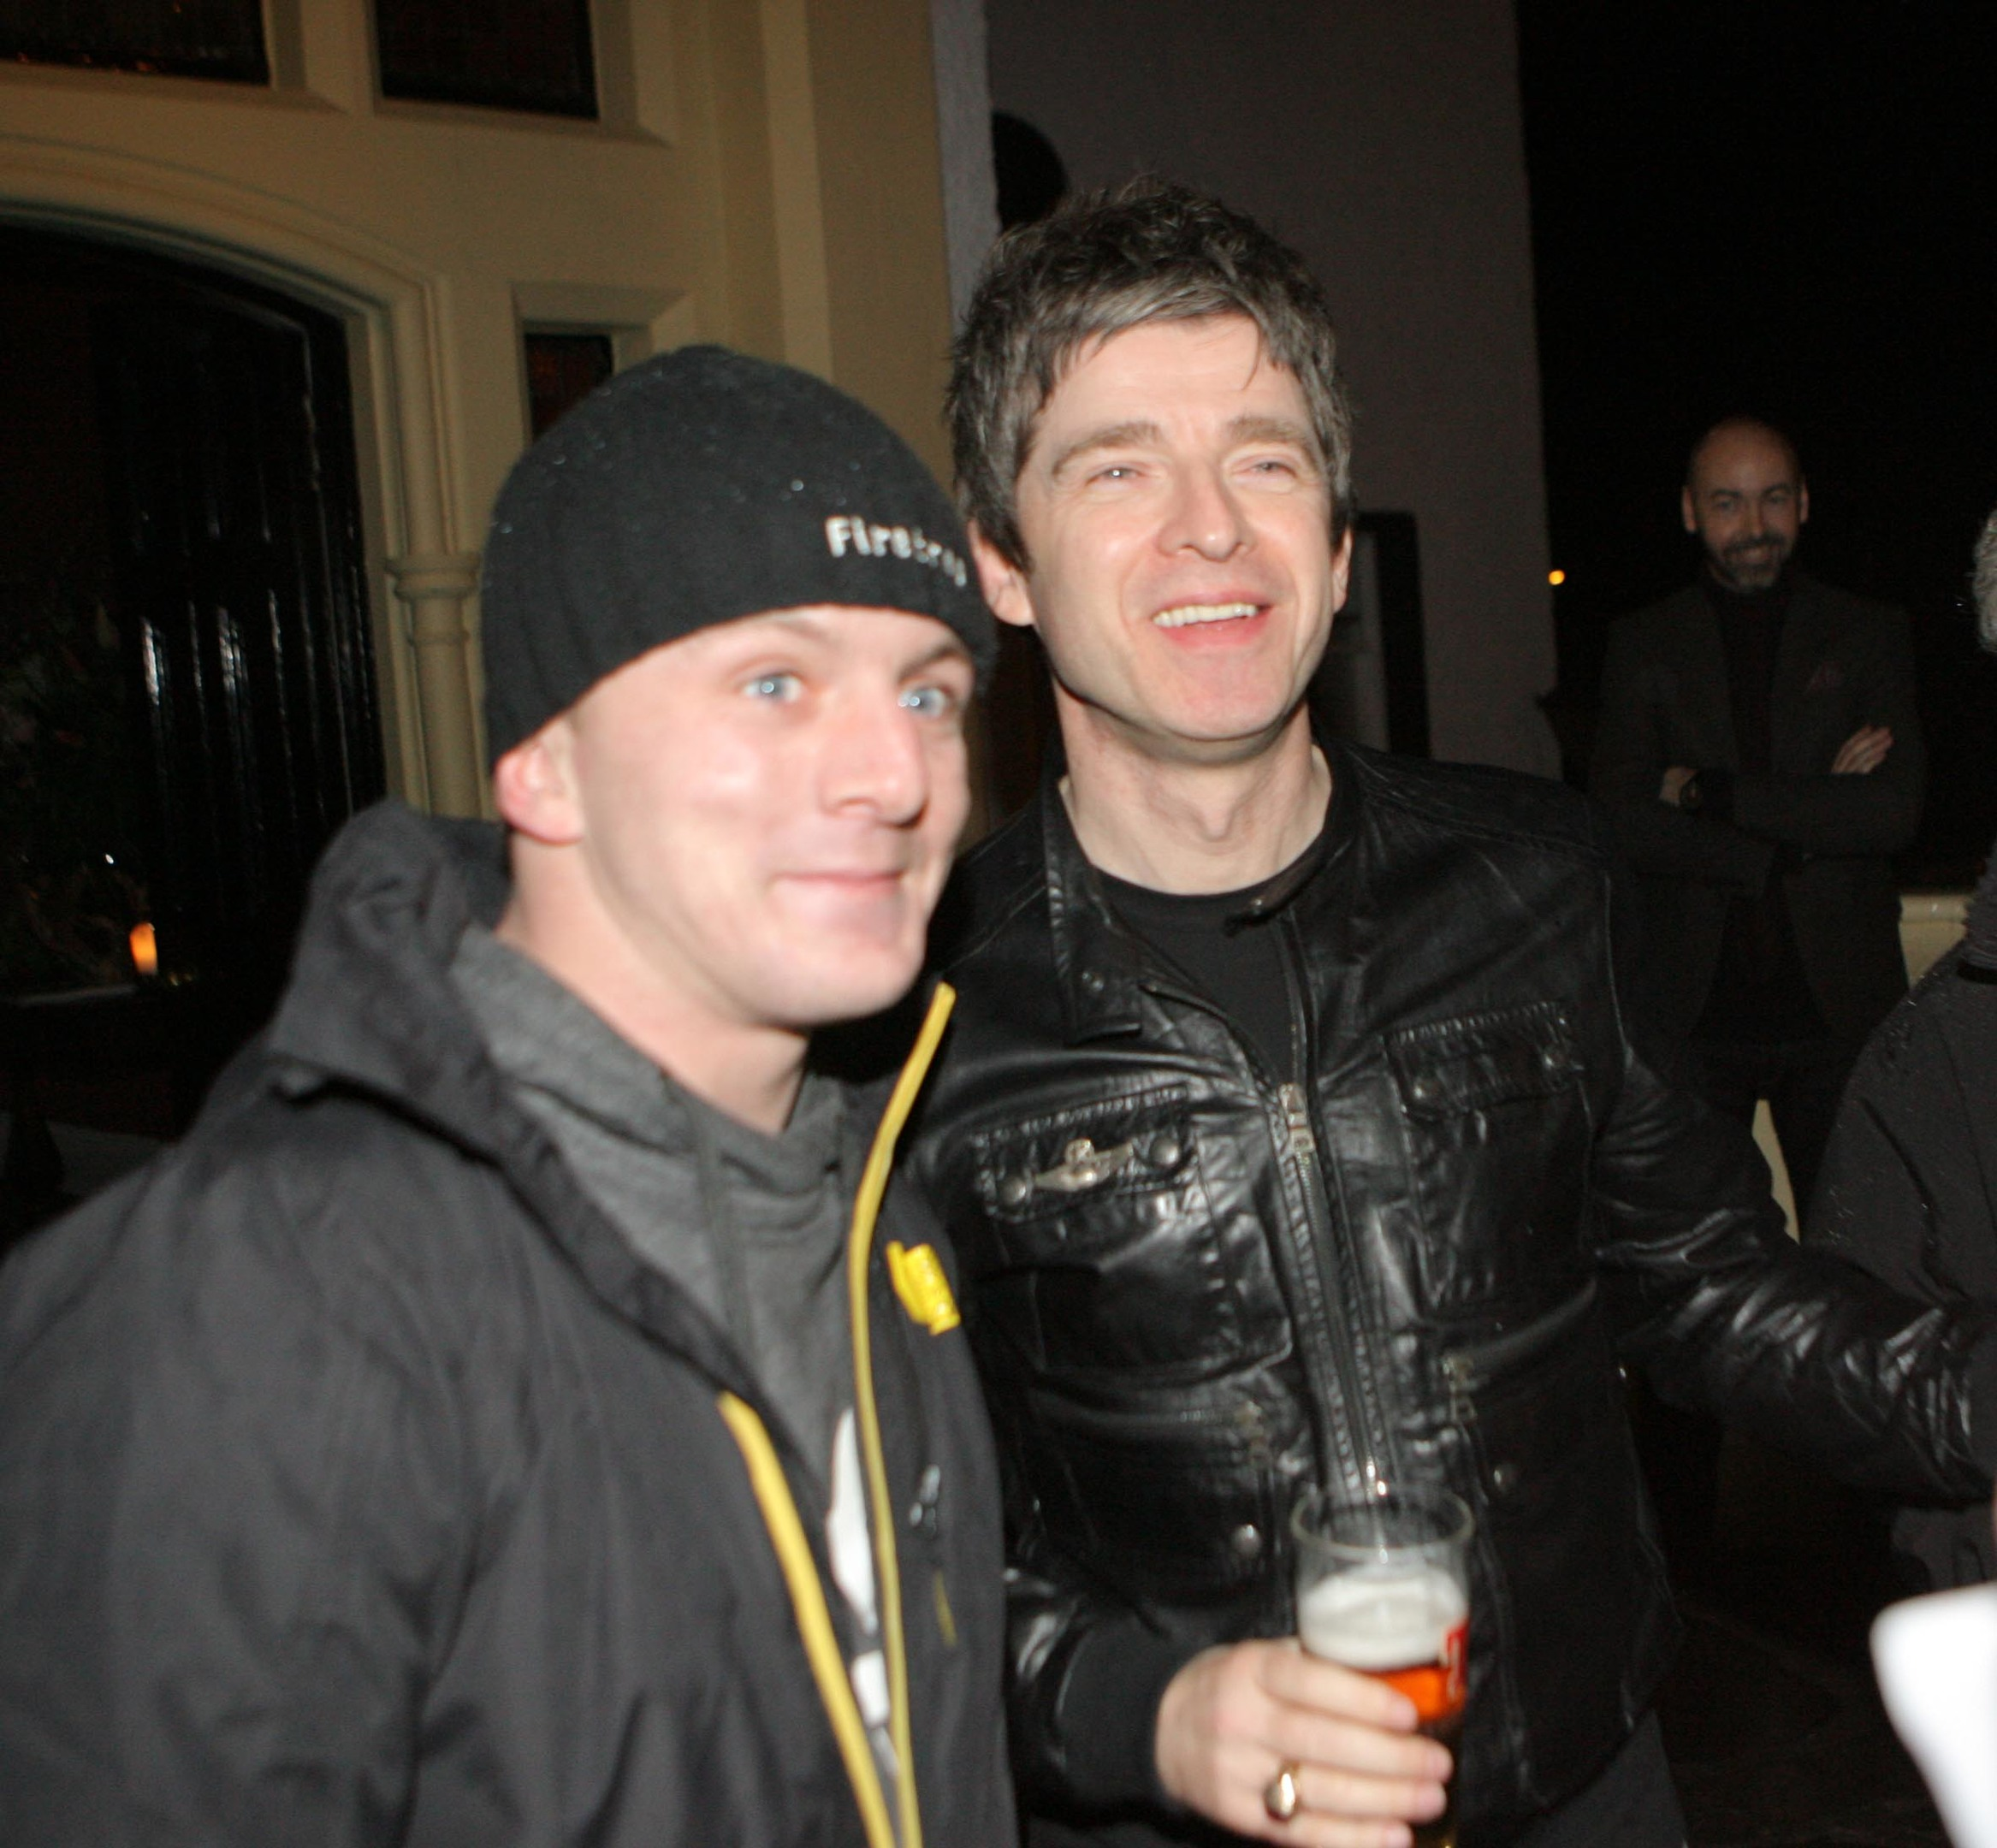 Calum Smith says he still hasn't come down from cloud nine after meeting his hero, Noel Gallagher